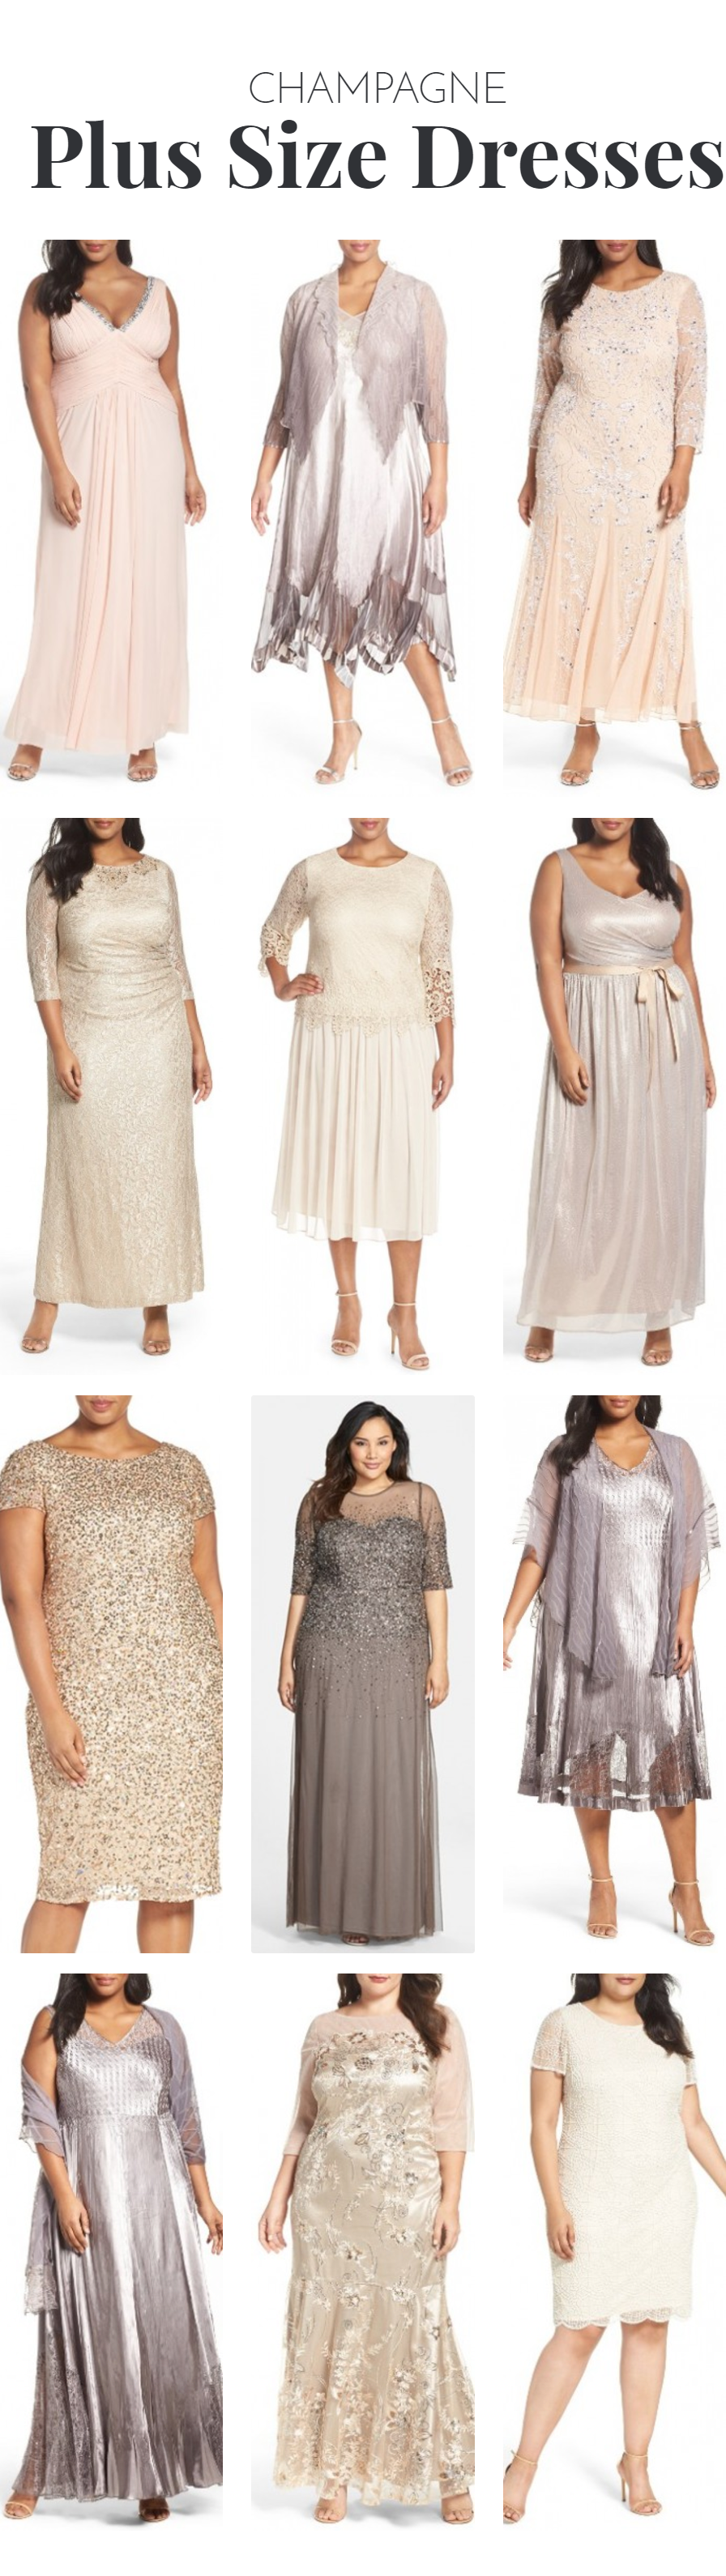 The Most flattering Plus Size dresses for the wedding in champagne ...